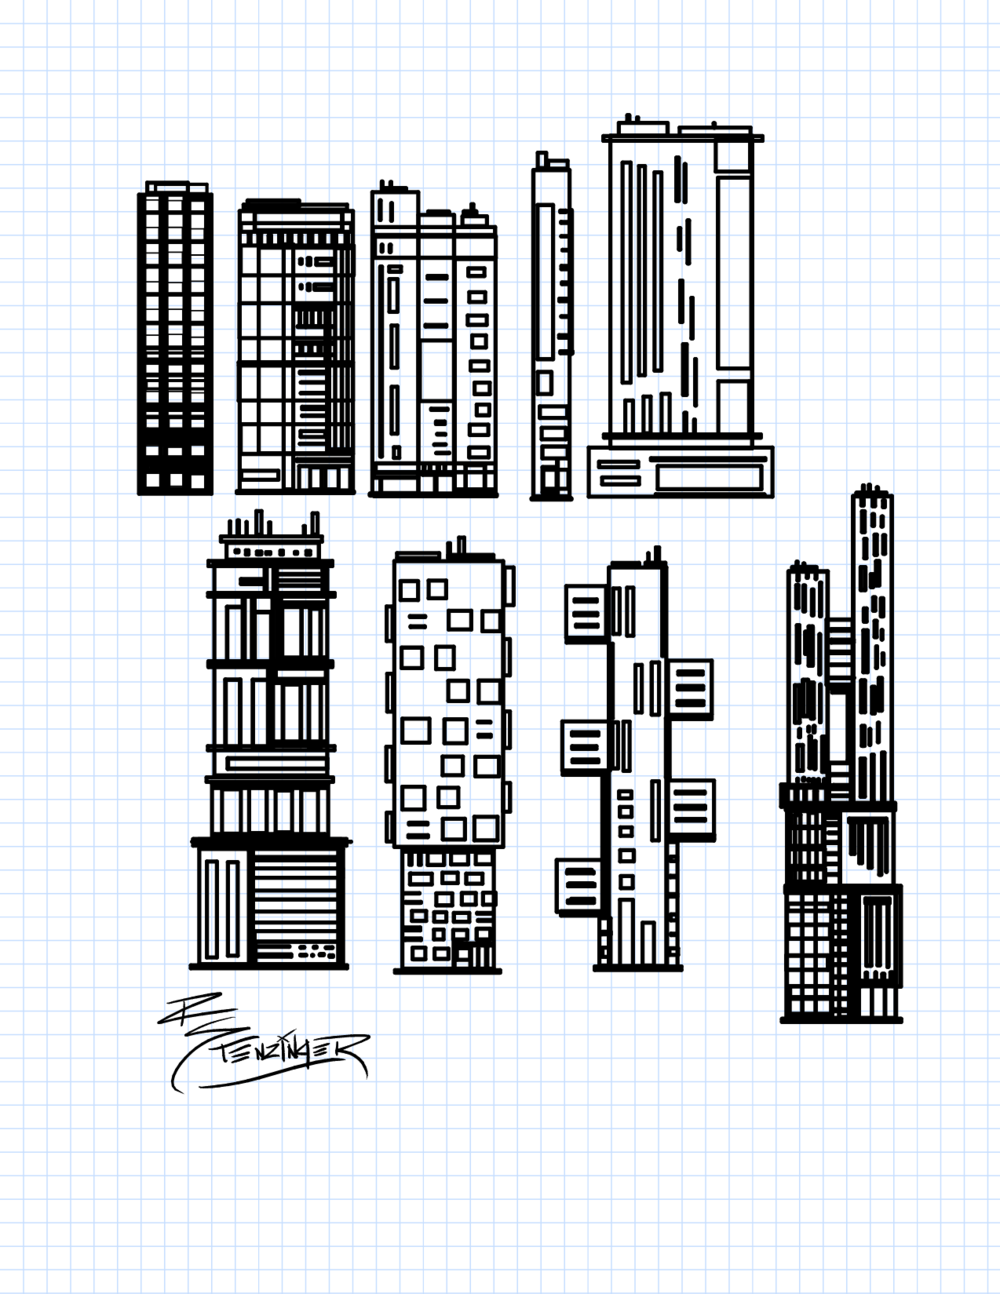 Buildings, perhaps to use in a future video game concept.